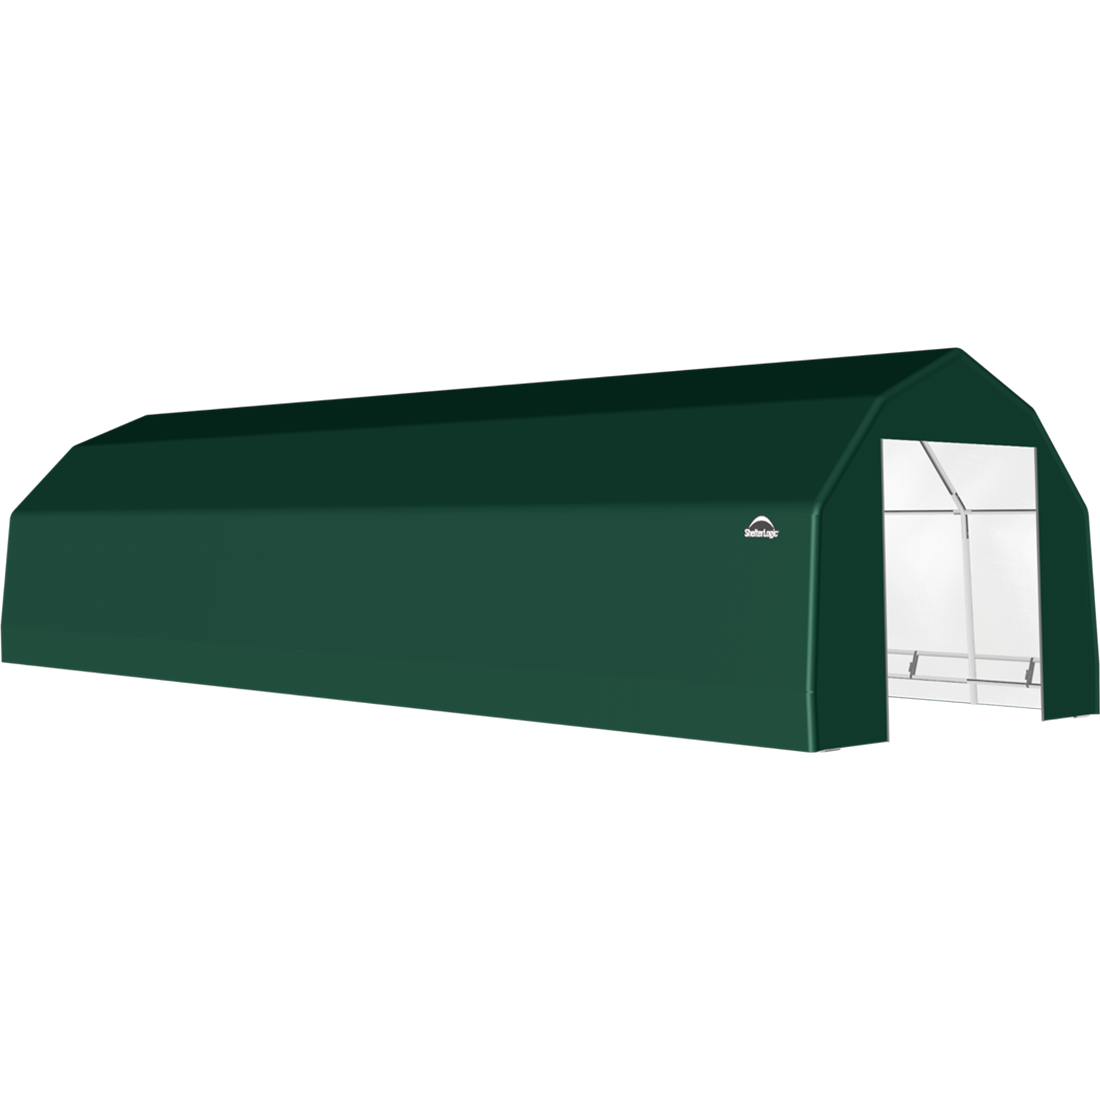 ShelterTech SP Series Barn Shelter, 15 ft. x 36 ft. x 11 ft. Heavy Duty PVC 14.5 oz. Green